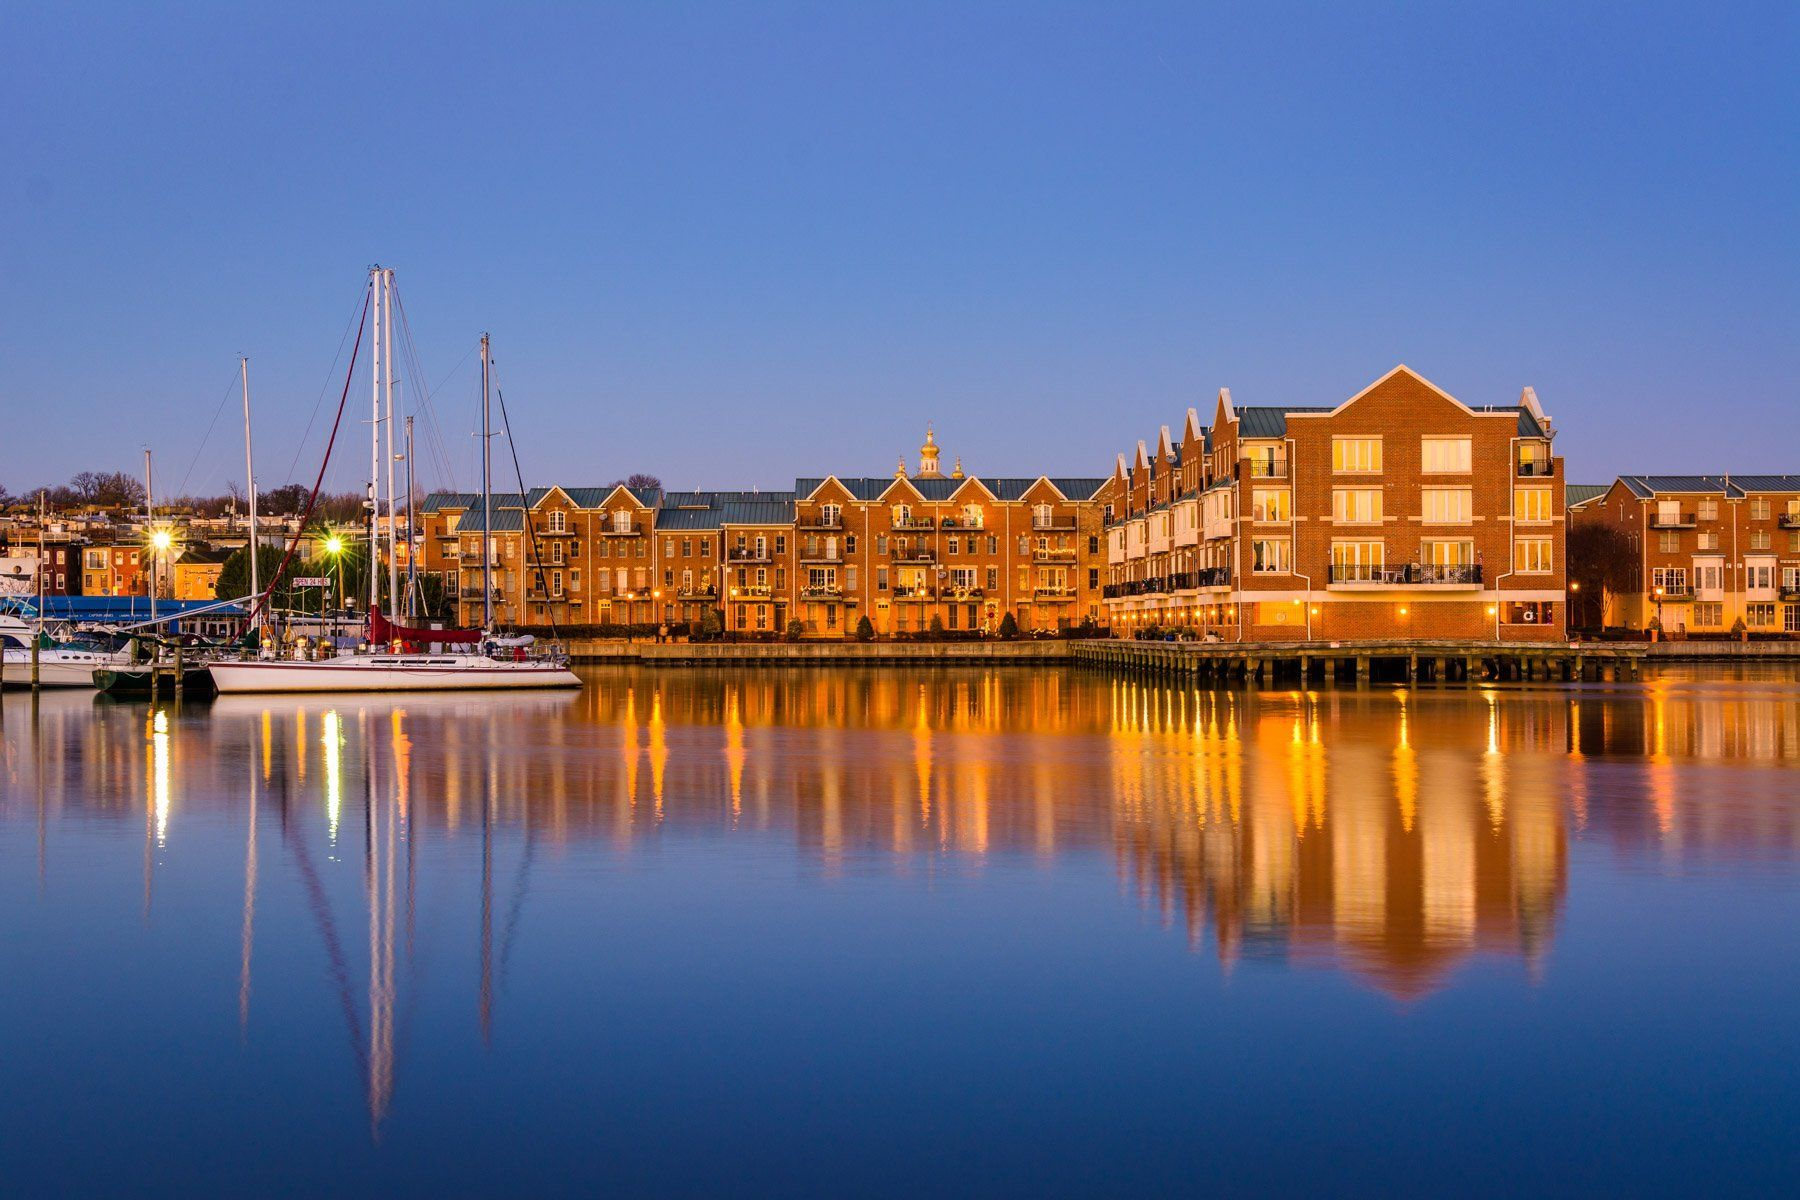 Buildings on the canton waterfront at twilight in